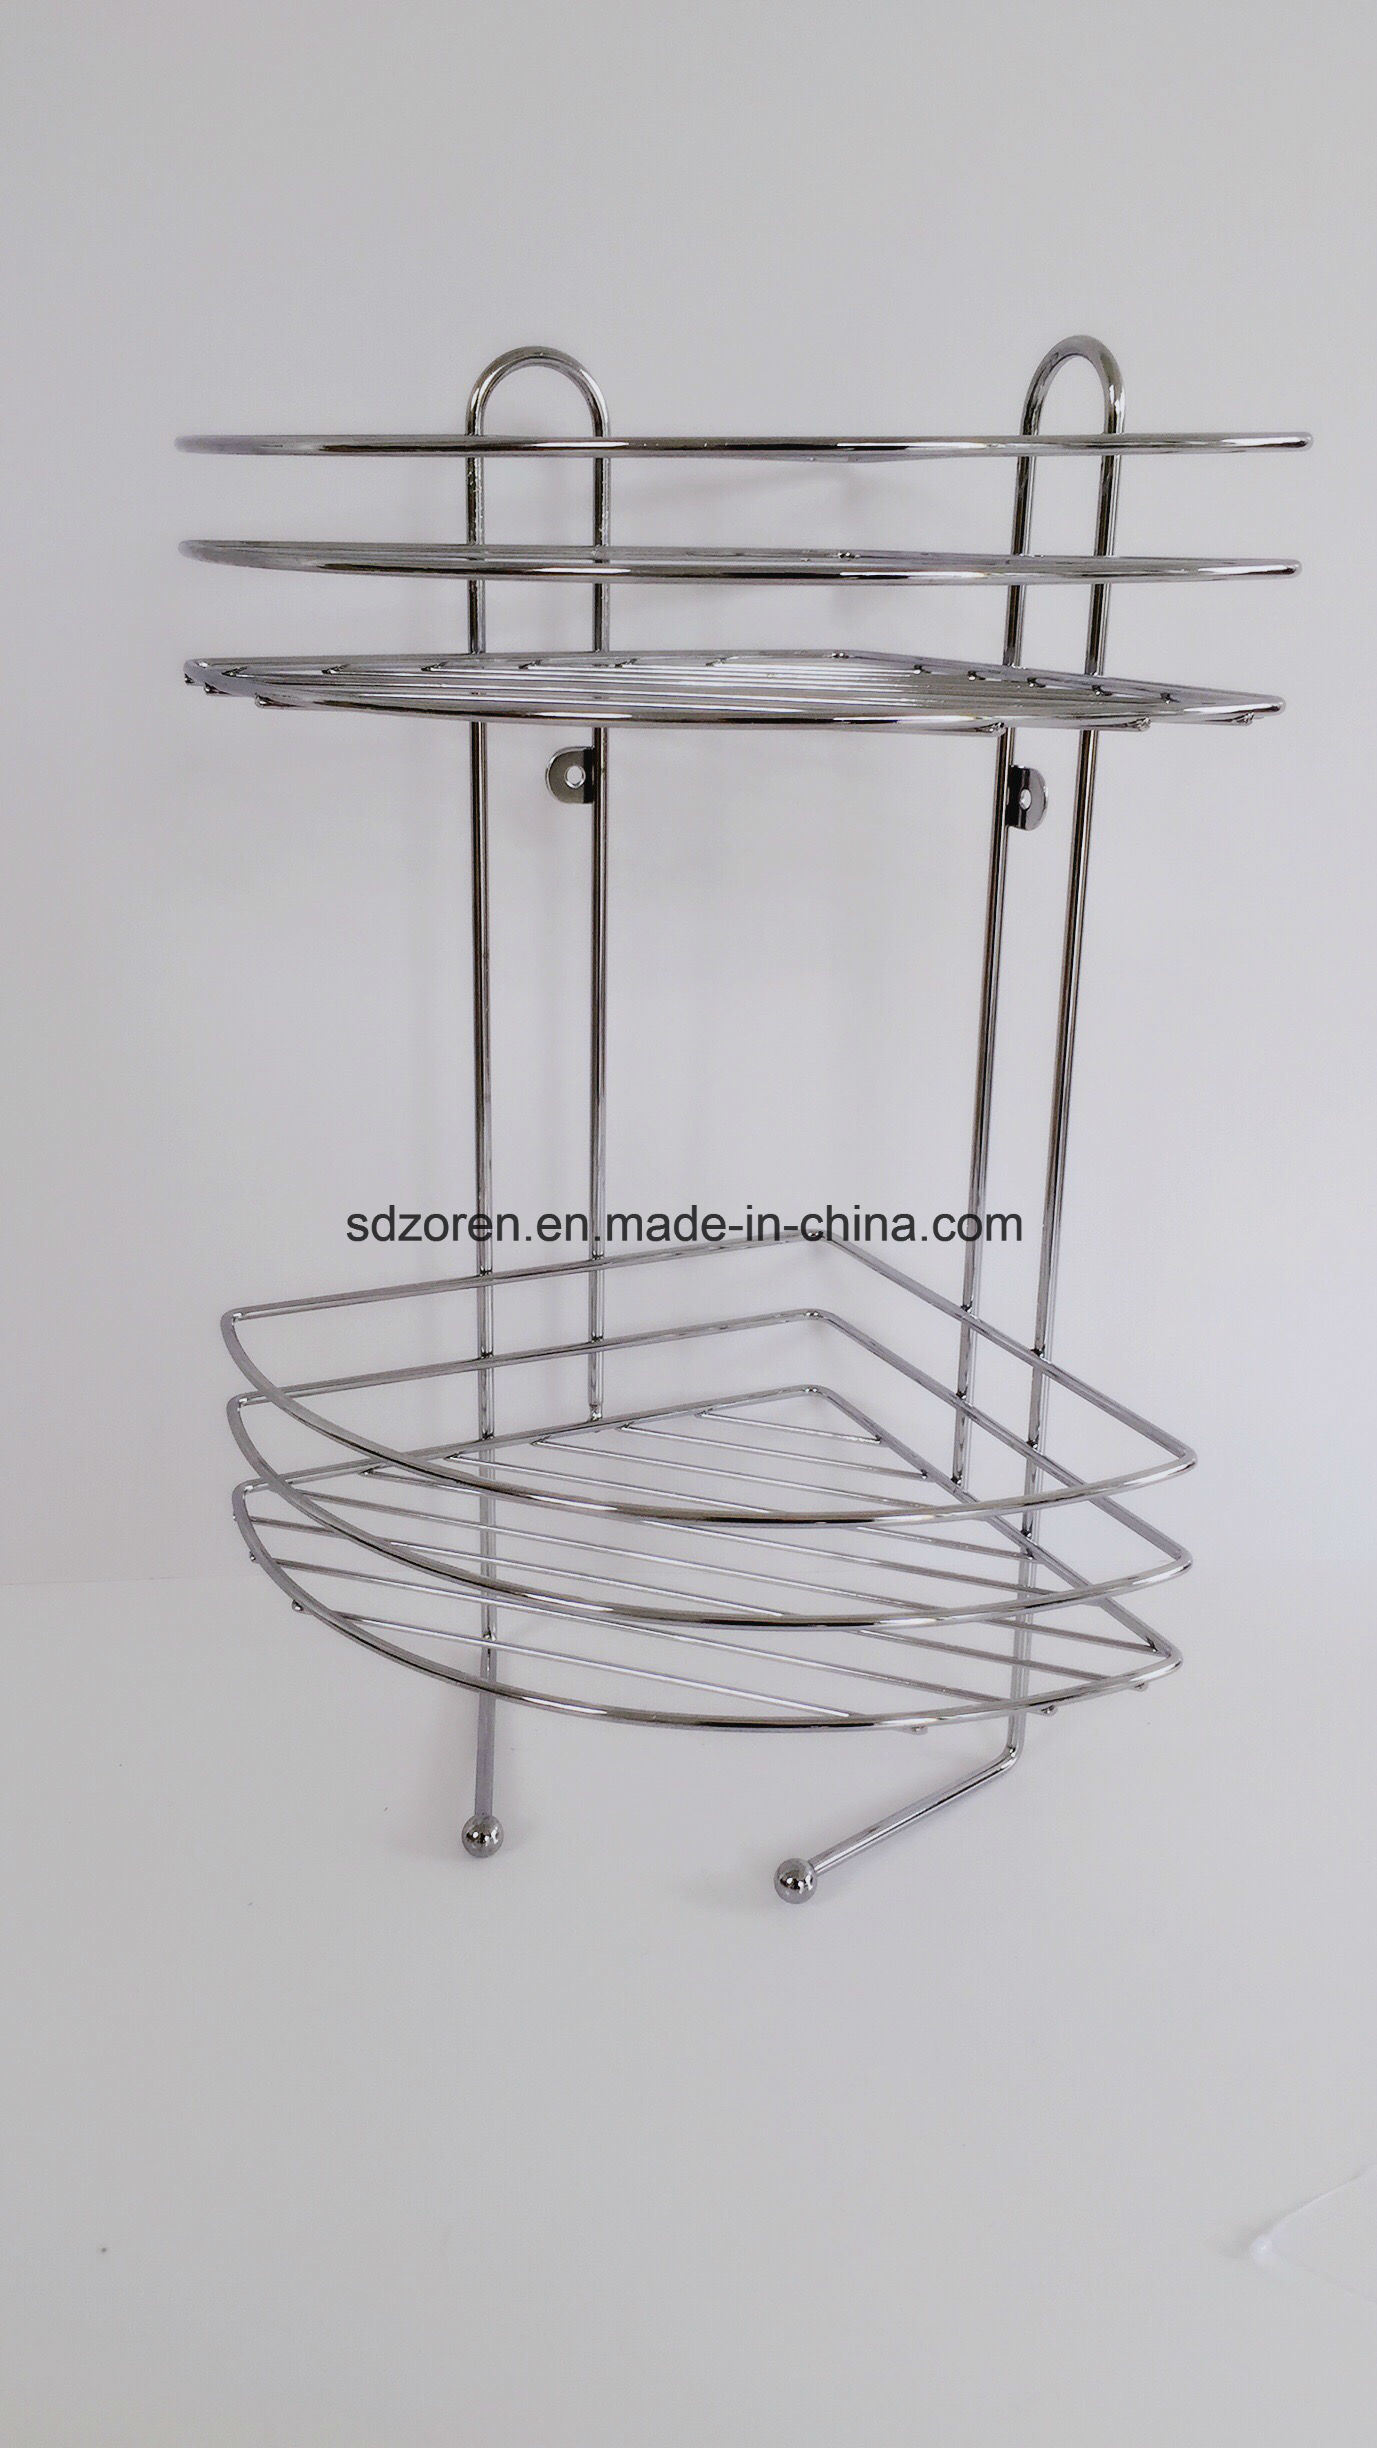 China Chrome-Plating Metal Wire Bathroom Hanging Shower Caddy ...